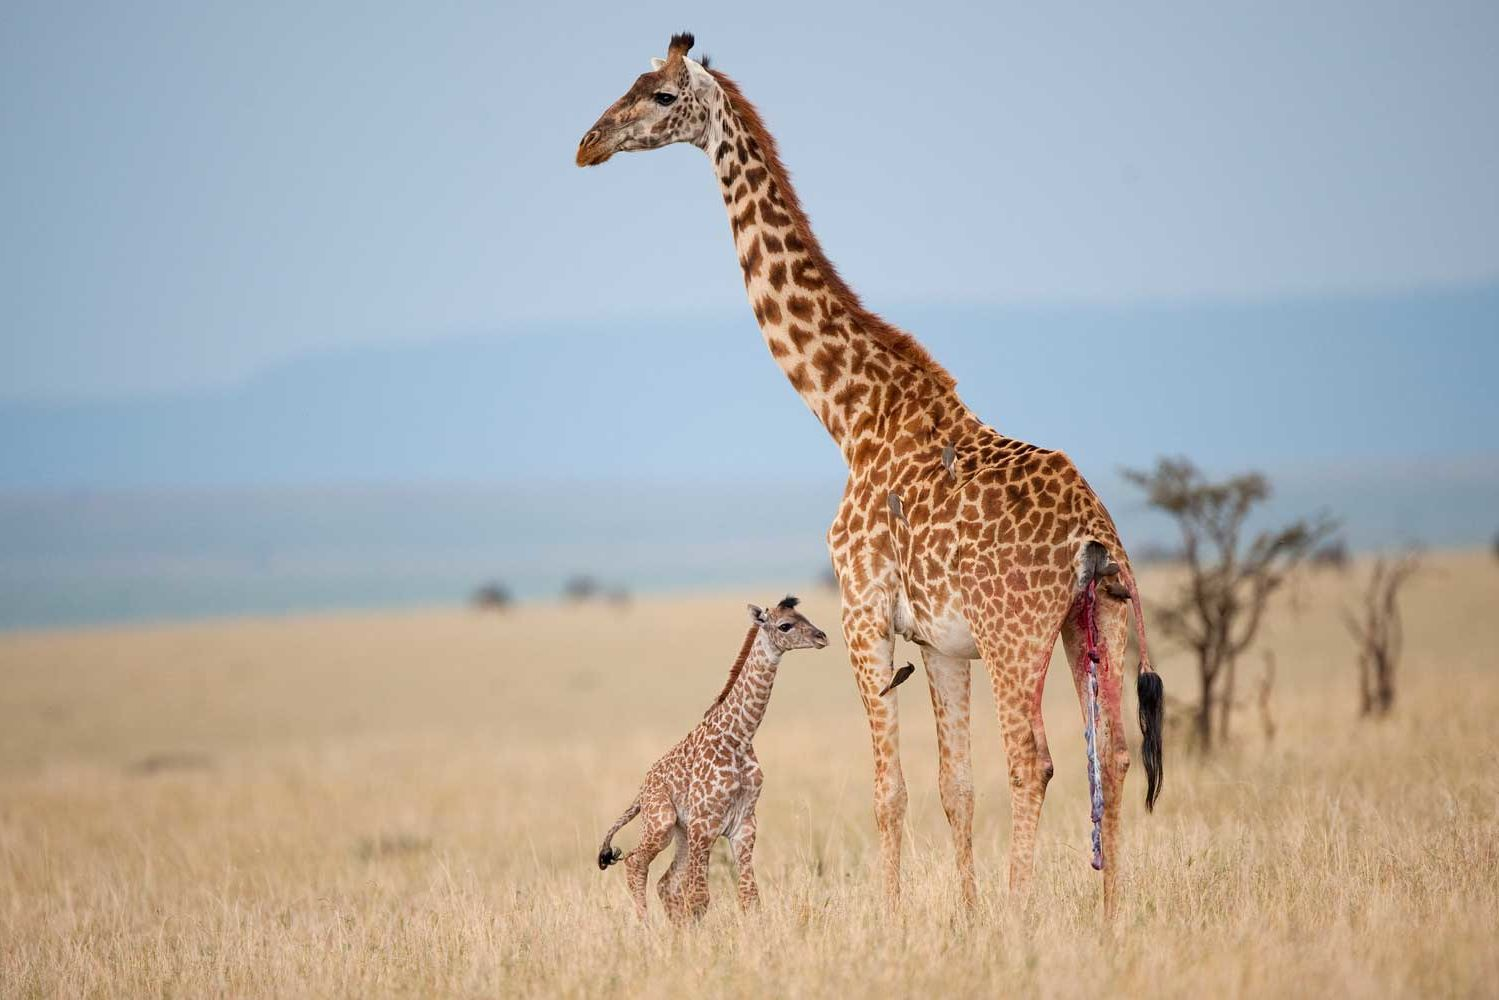 The Giraffe Could Soon Be Considered an Endangered Species